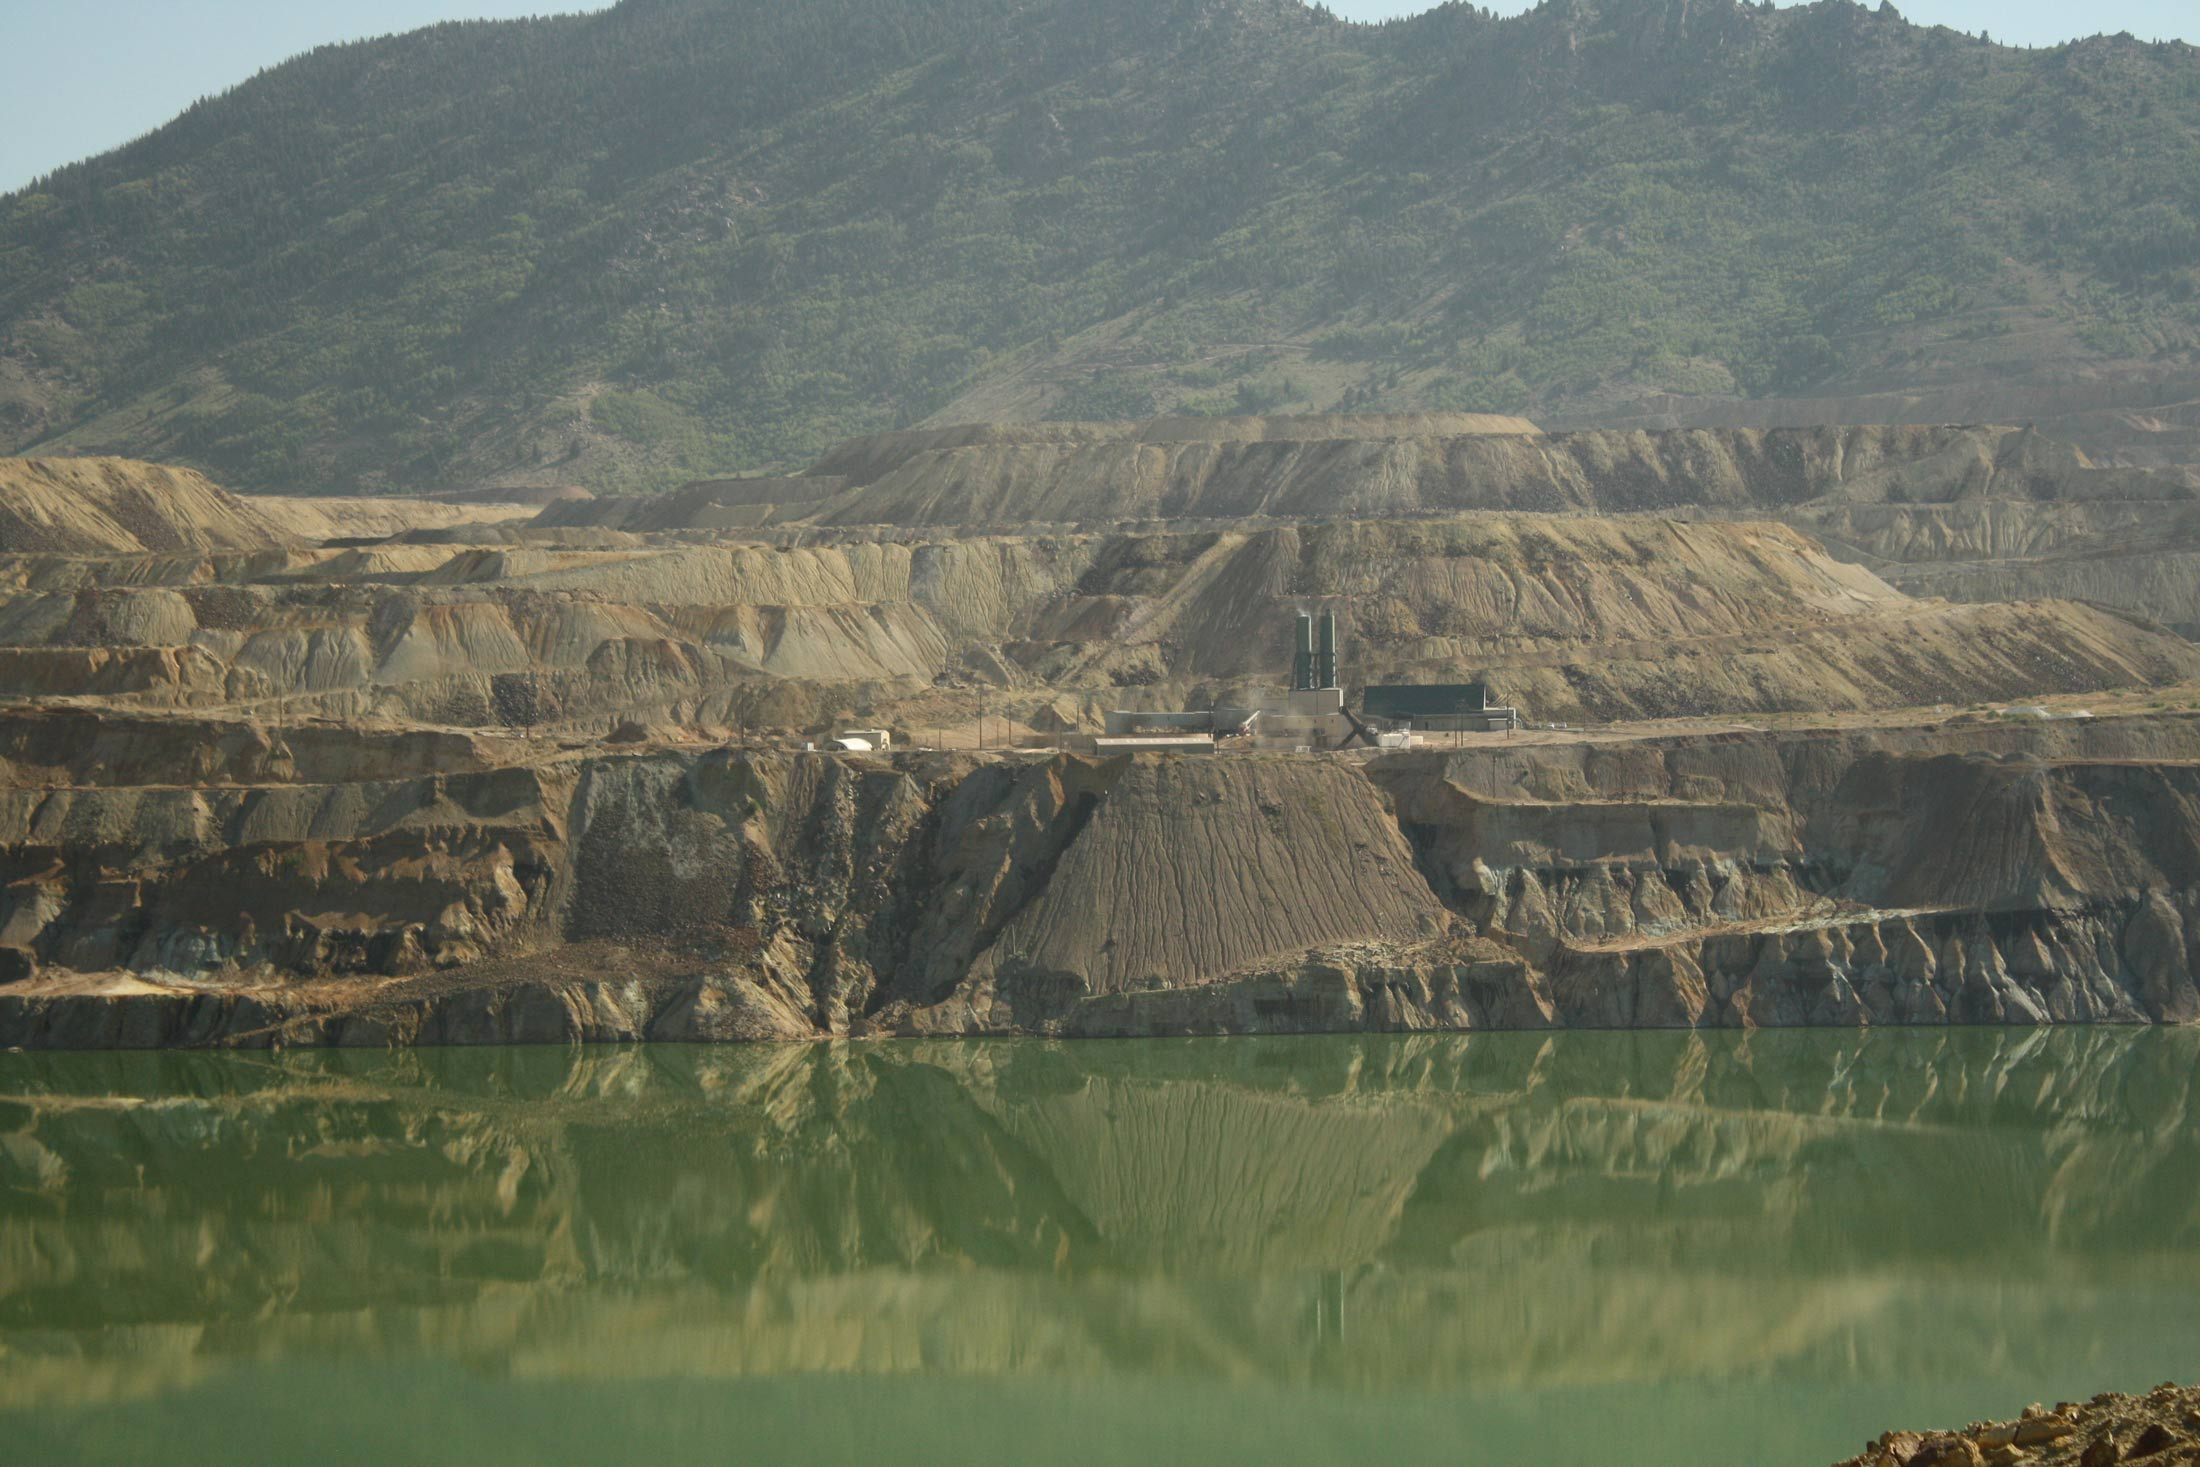 Berkeley Pit View of Horseshoe Bend Water Treatment Plant. Photo by Kayla Lappin, CFWEP.